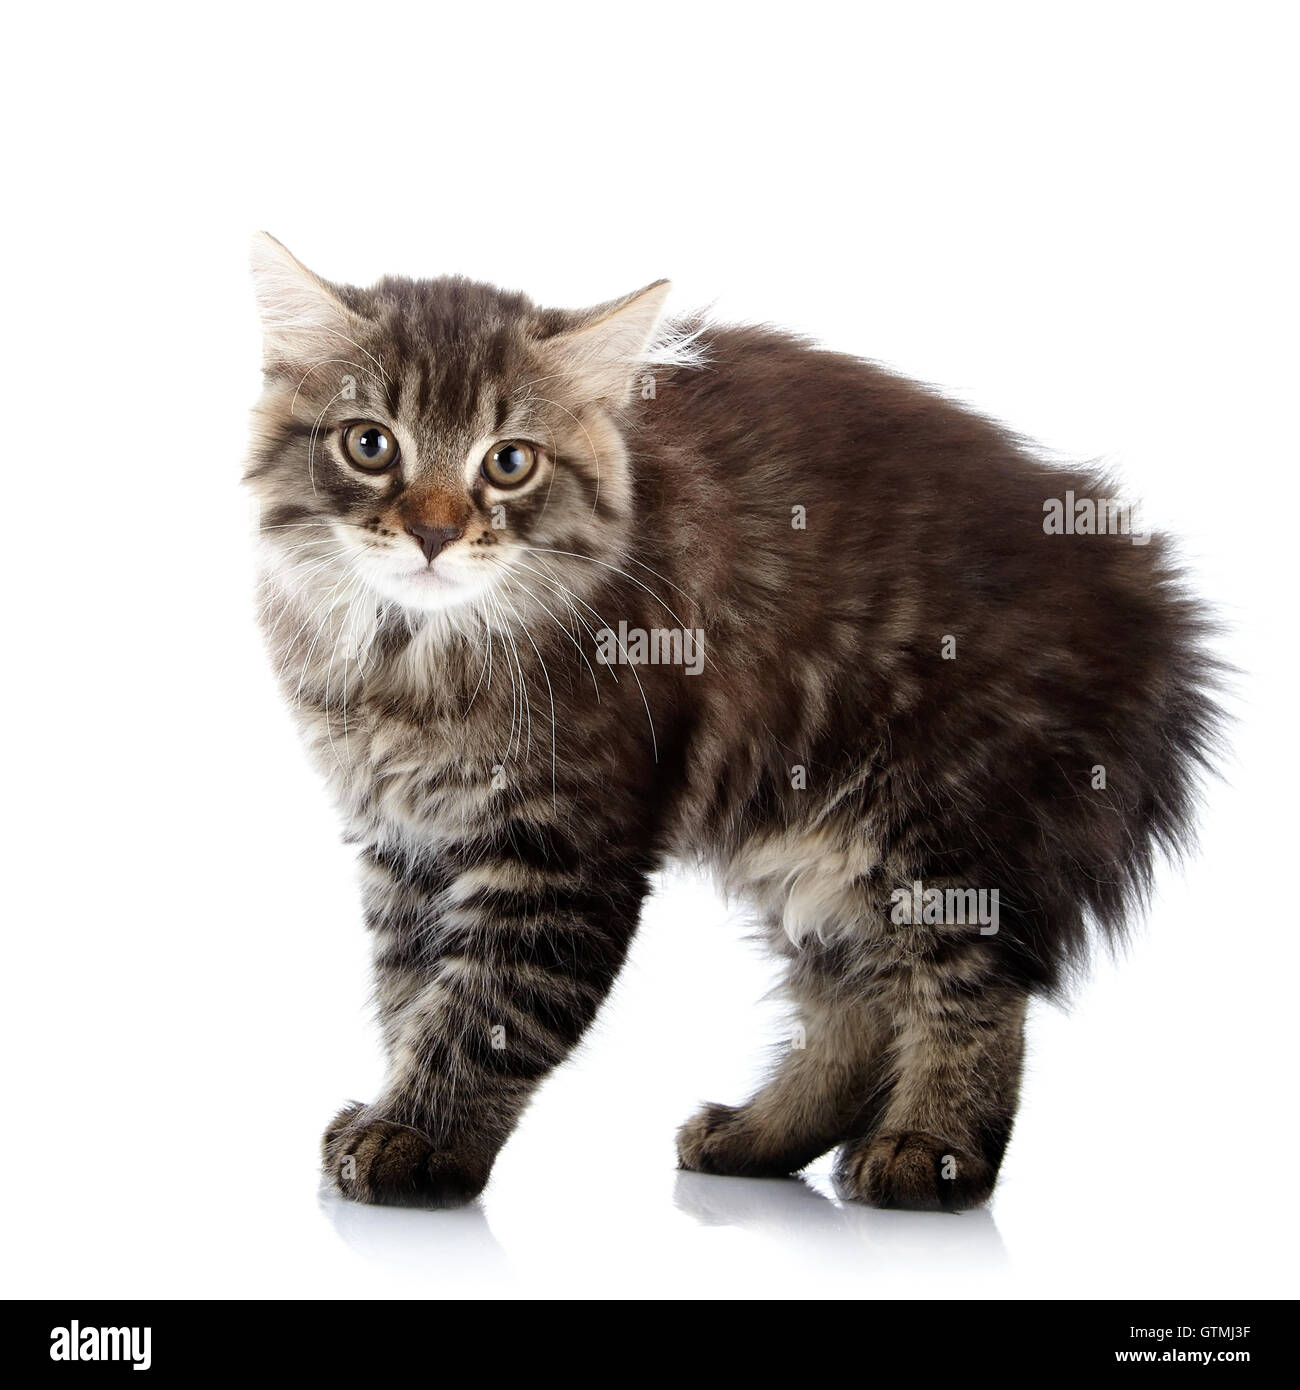 Striped fluffy angry tousled small cat - Stock Image